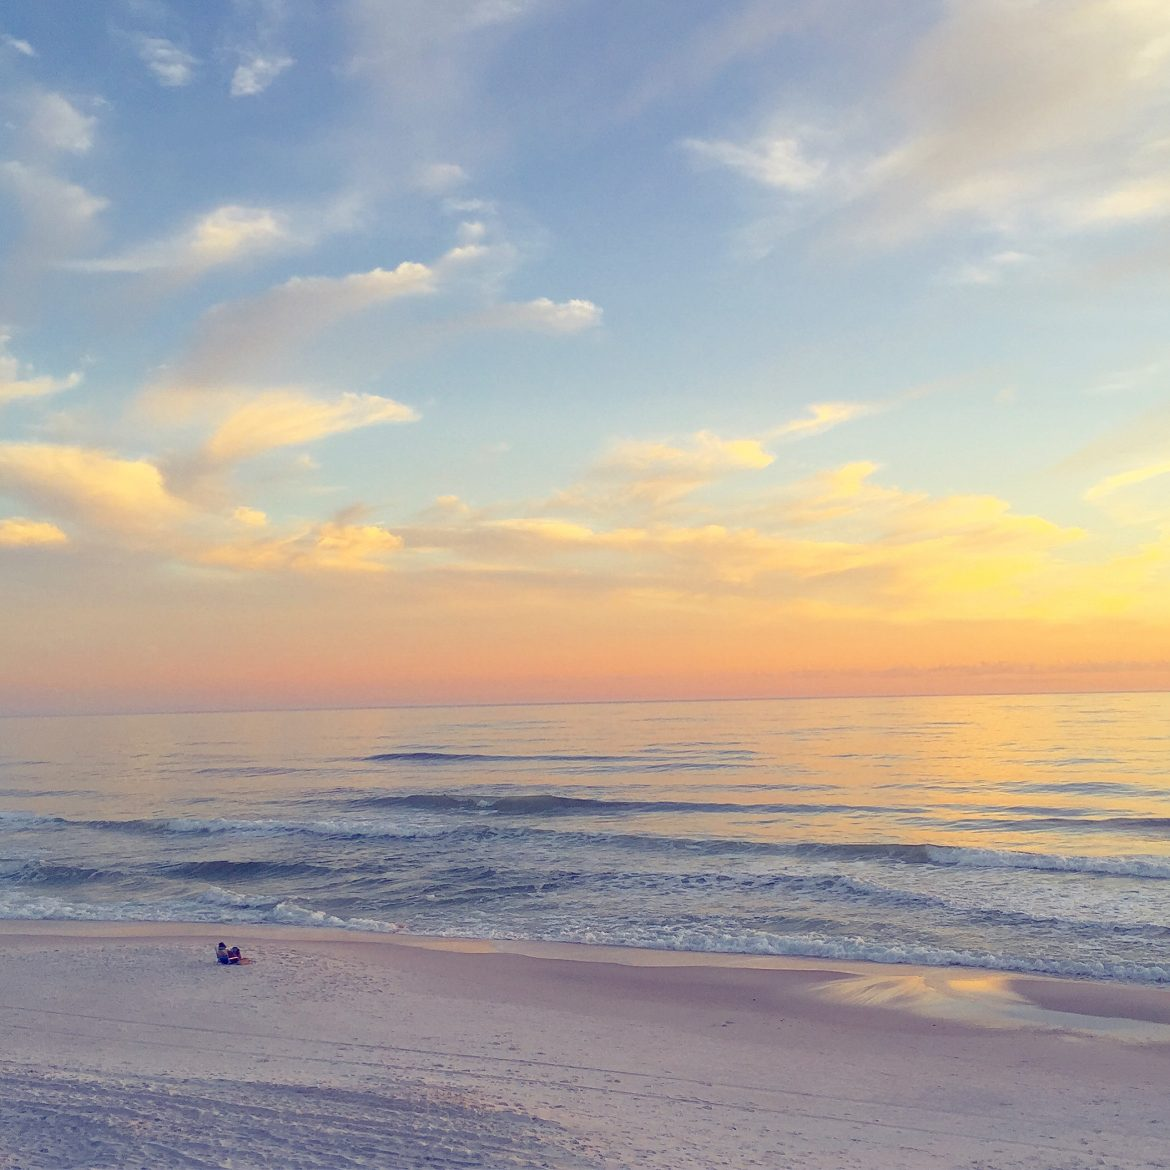 Best 30A Restaurants - Capt. Hunter Ray's Favorite Seafood Restaurants and more in South Walton